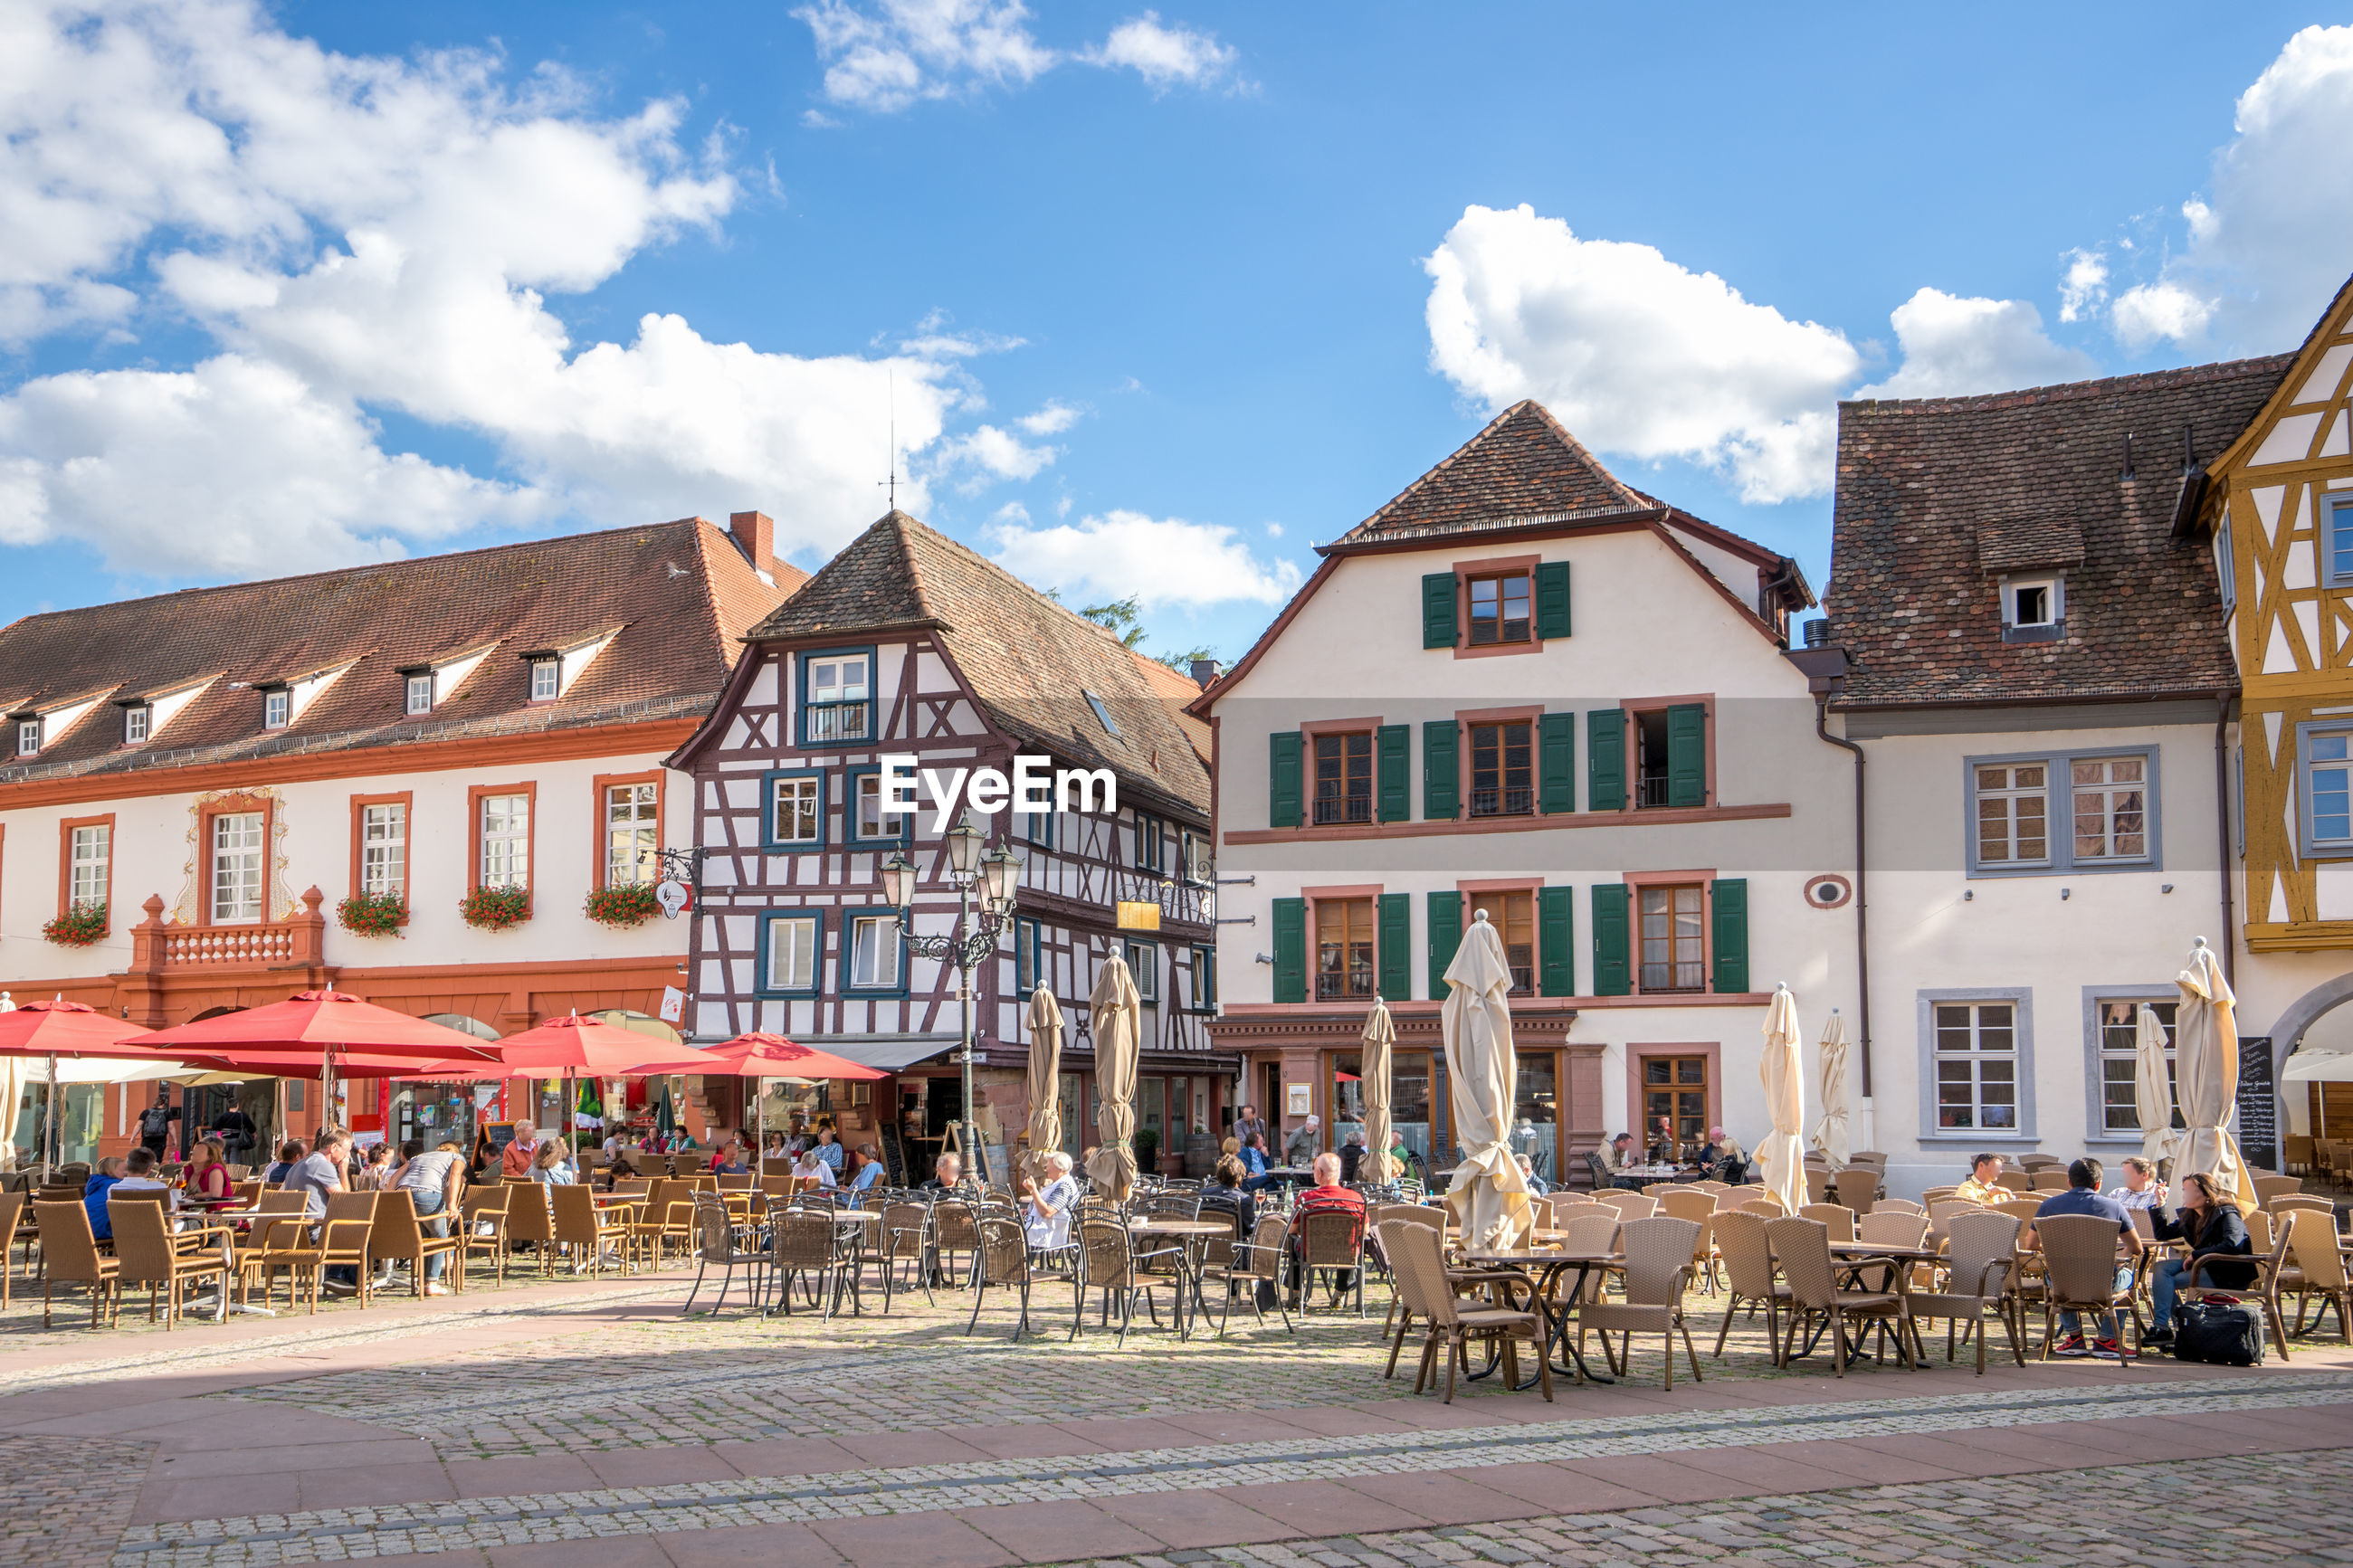 architecture, building exterior, built structure, cloud - sky, sky, city, building, nature, day, table, street, seat, chair, horse, incidental people, town, residential district, outdoors, people, town square